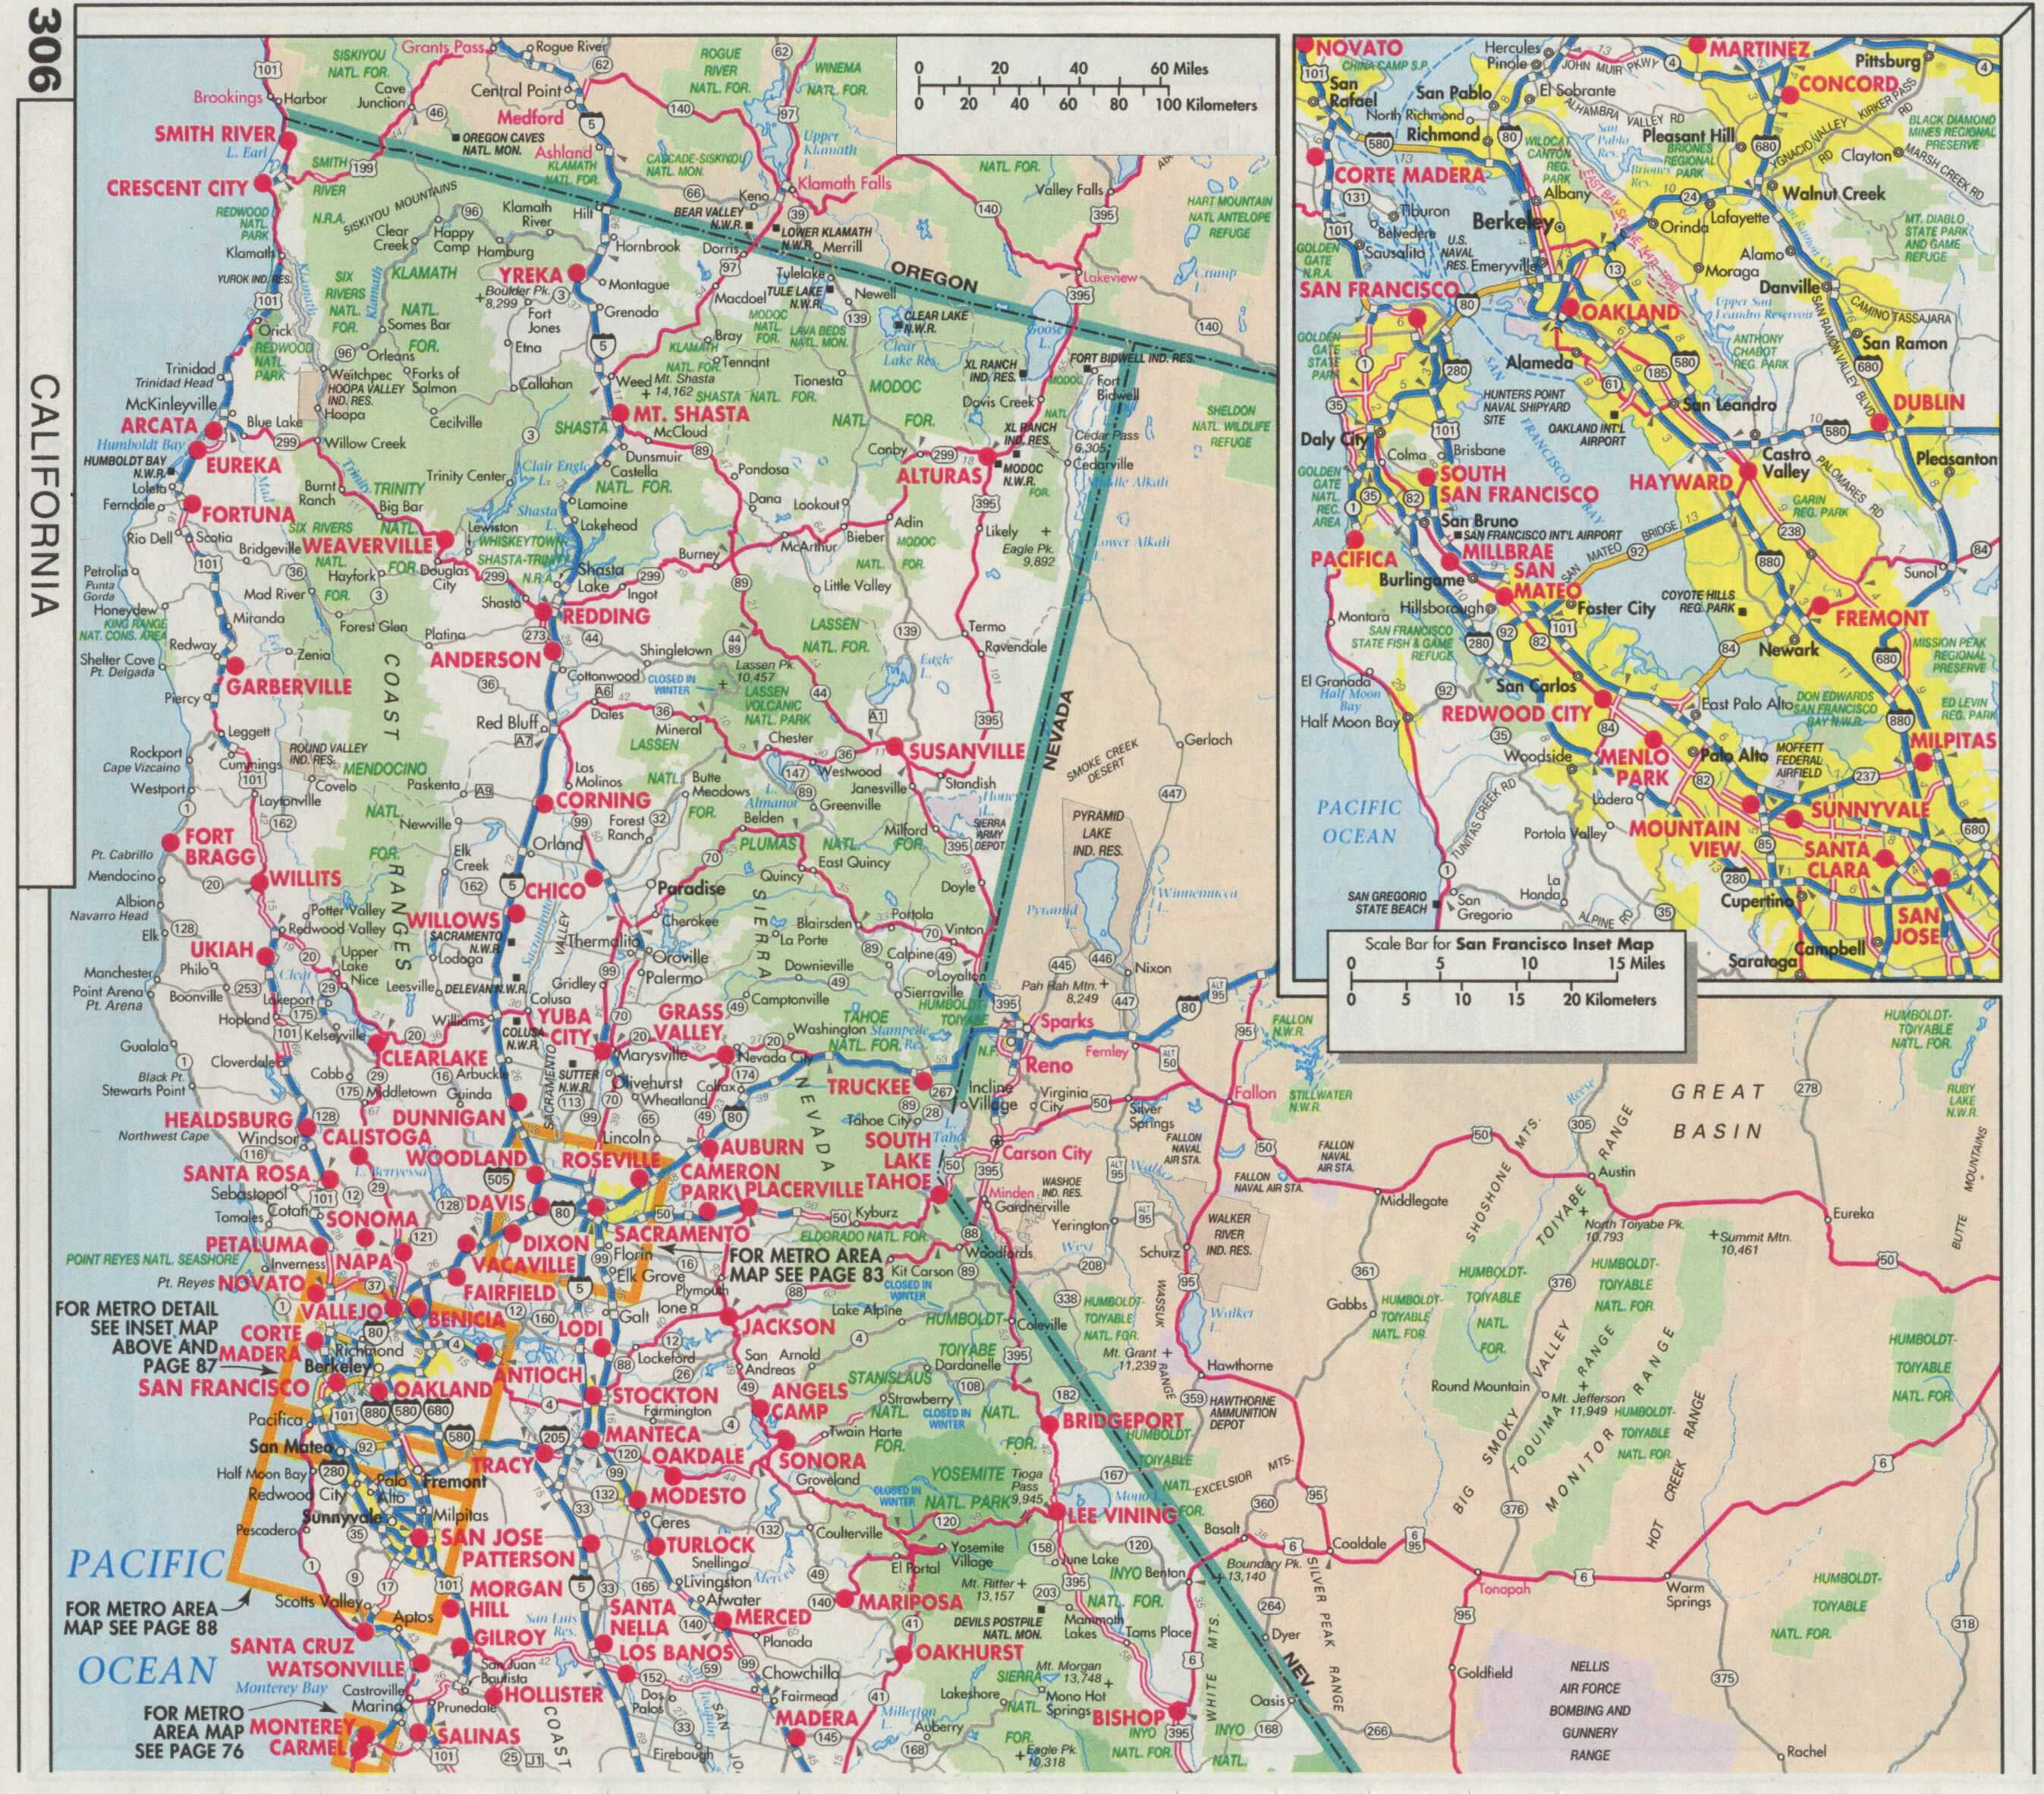 Highway Map Of Northern California - Klipy - Driving Map Of Northern California